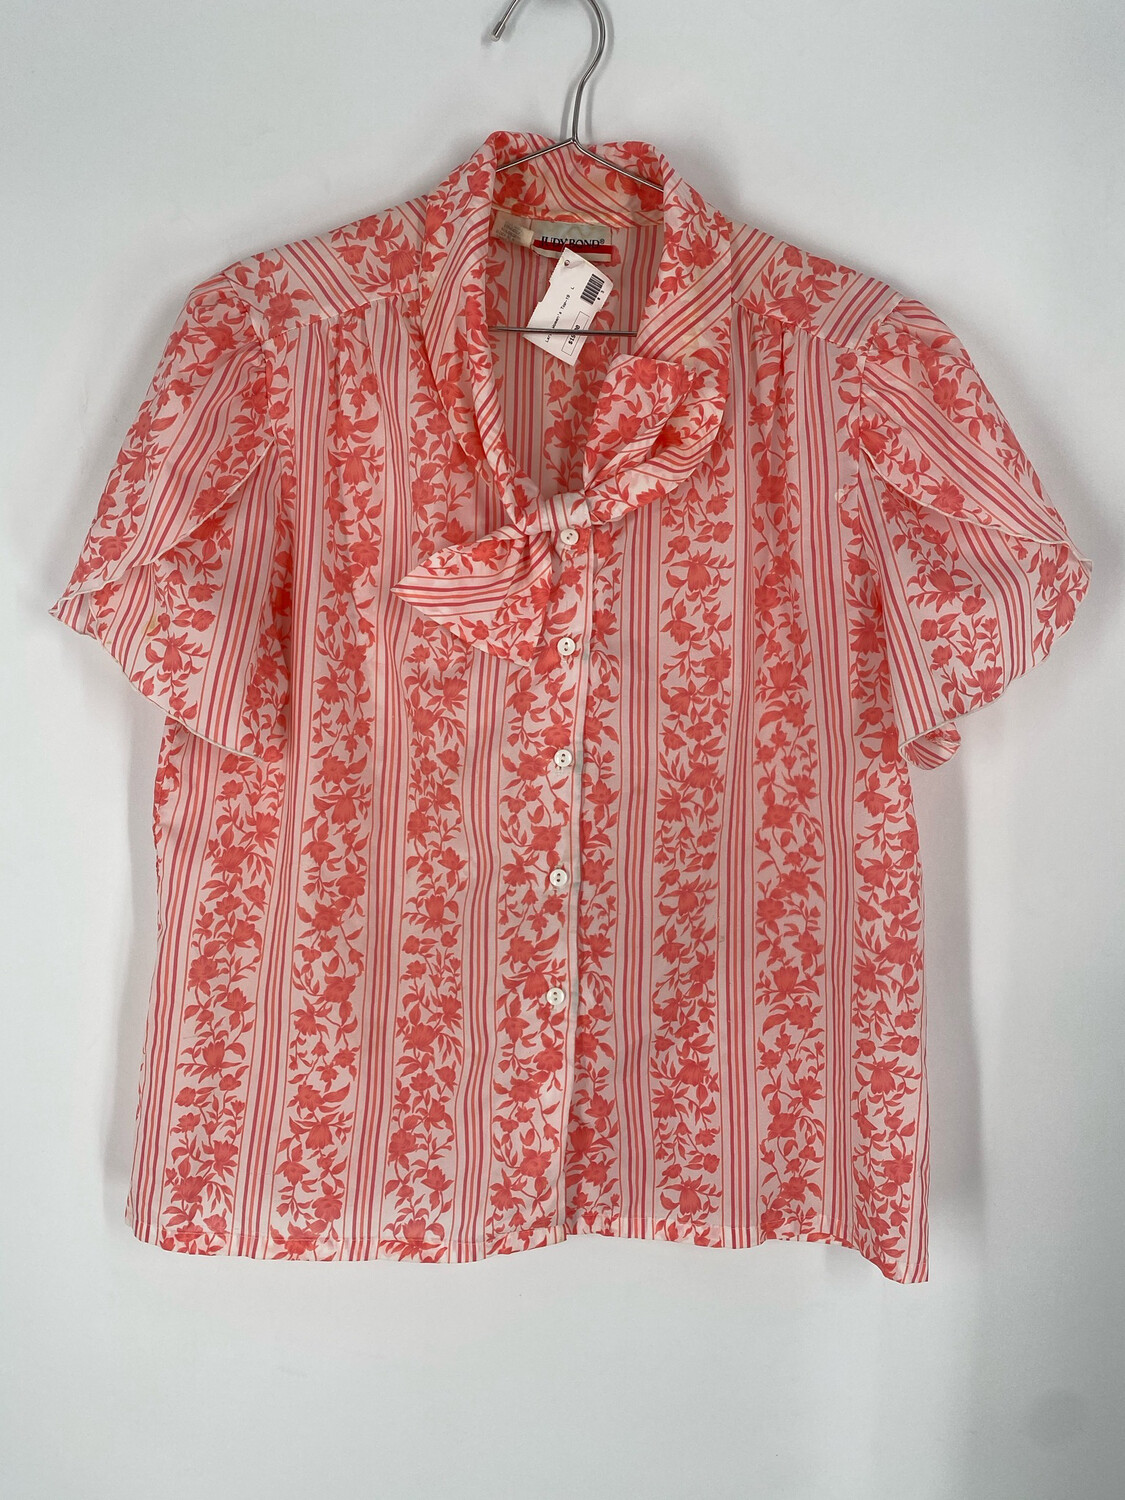 Judy Bond Floral Button Up Top Size 16